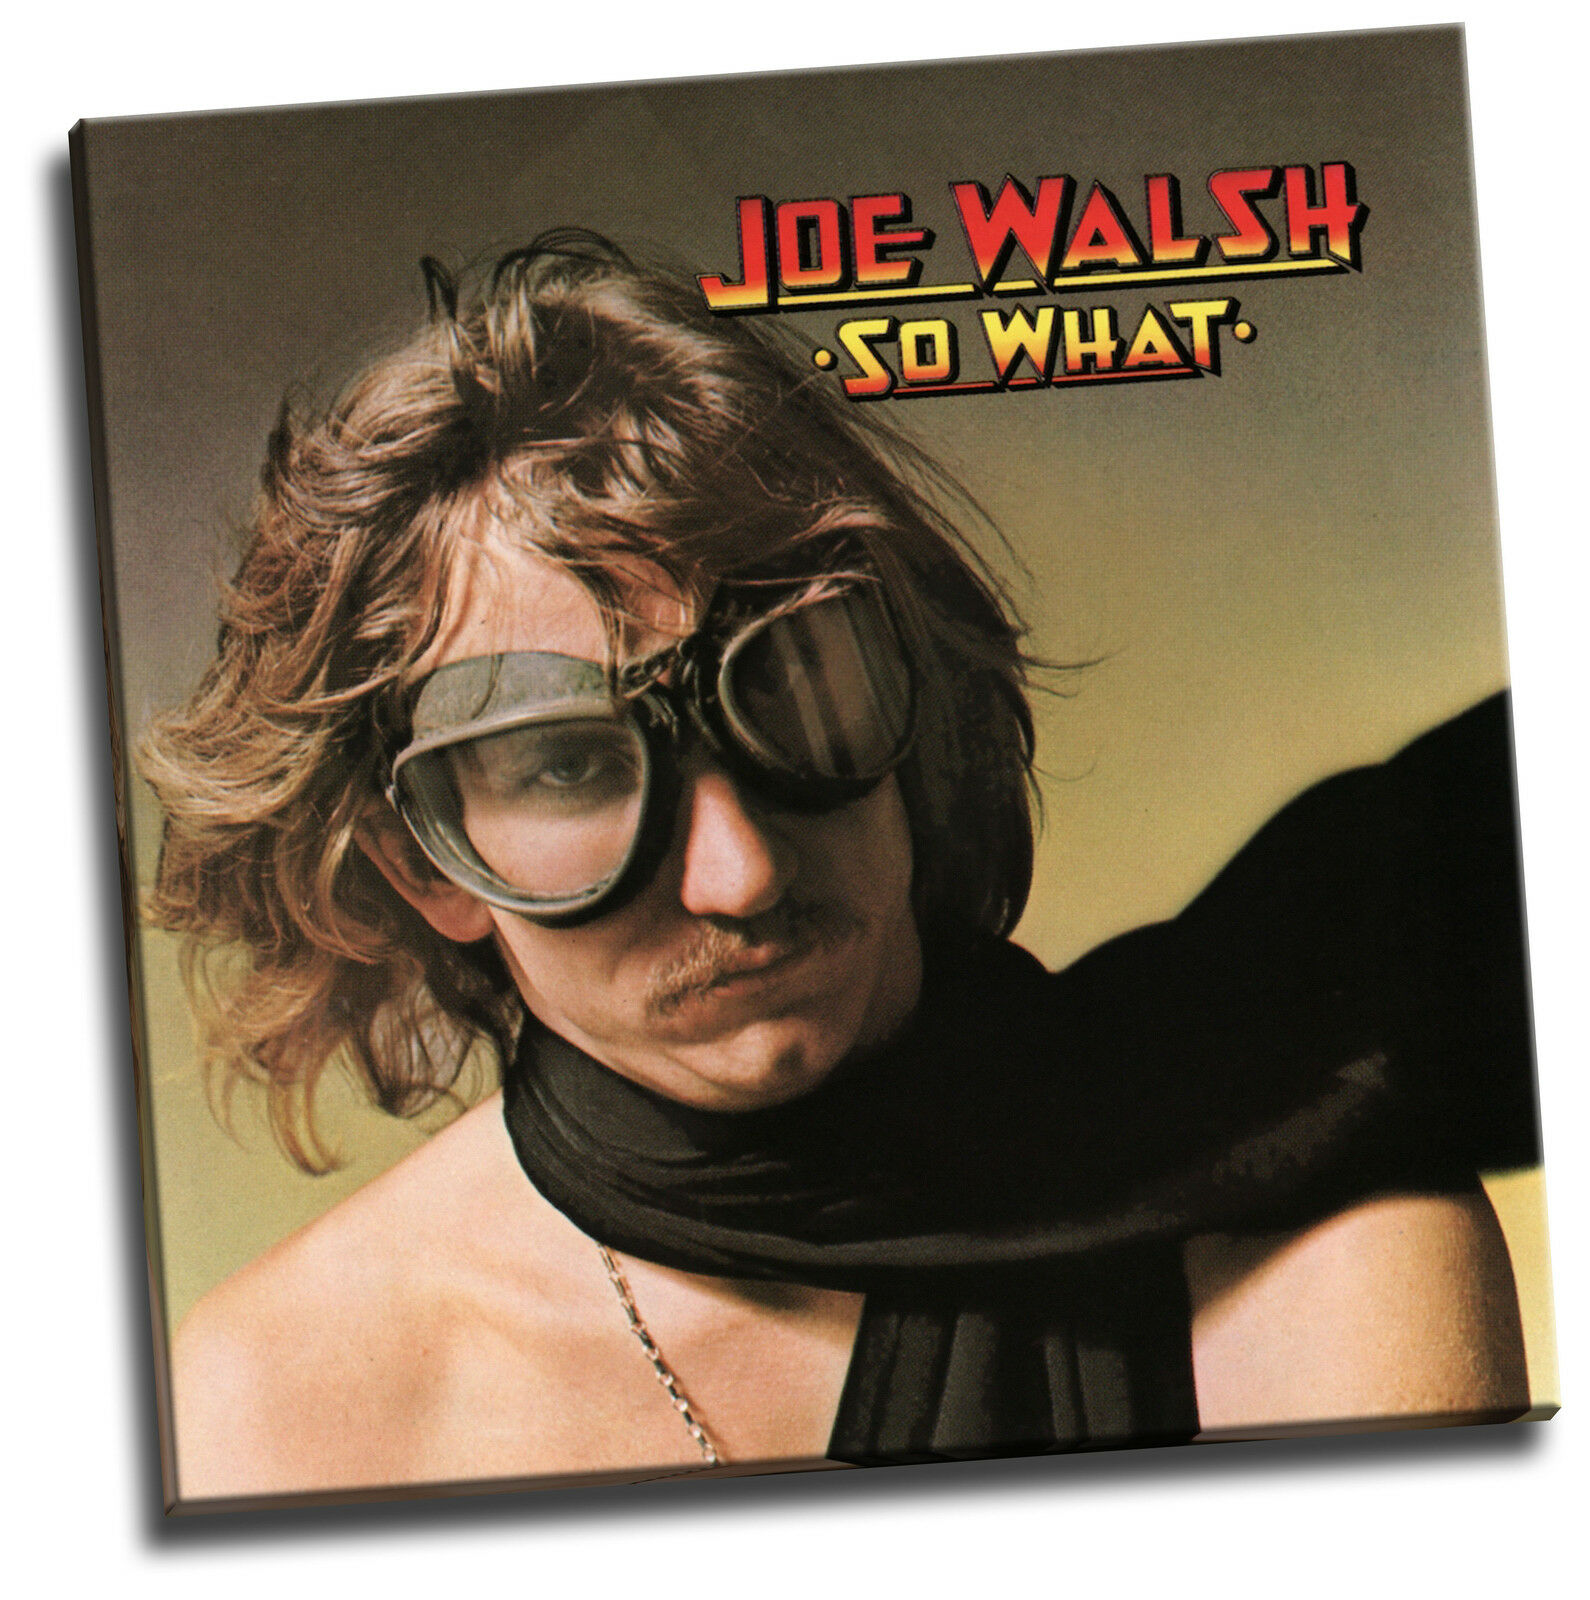 Joe Walsh - So What Giclee Canvas Album Cover Picture Art